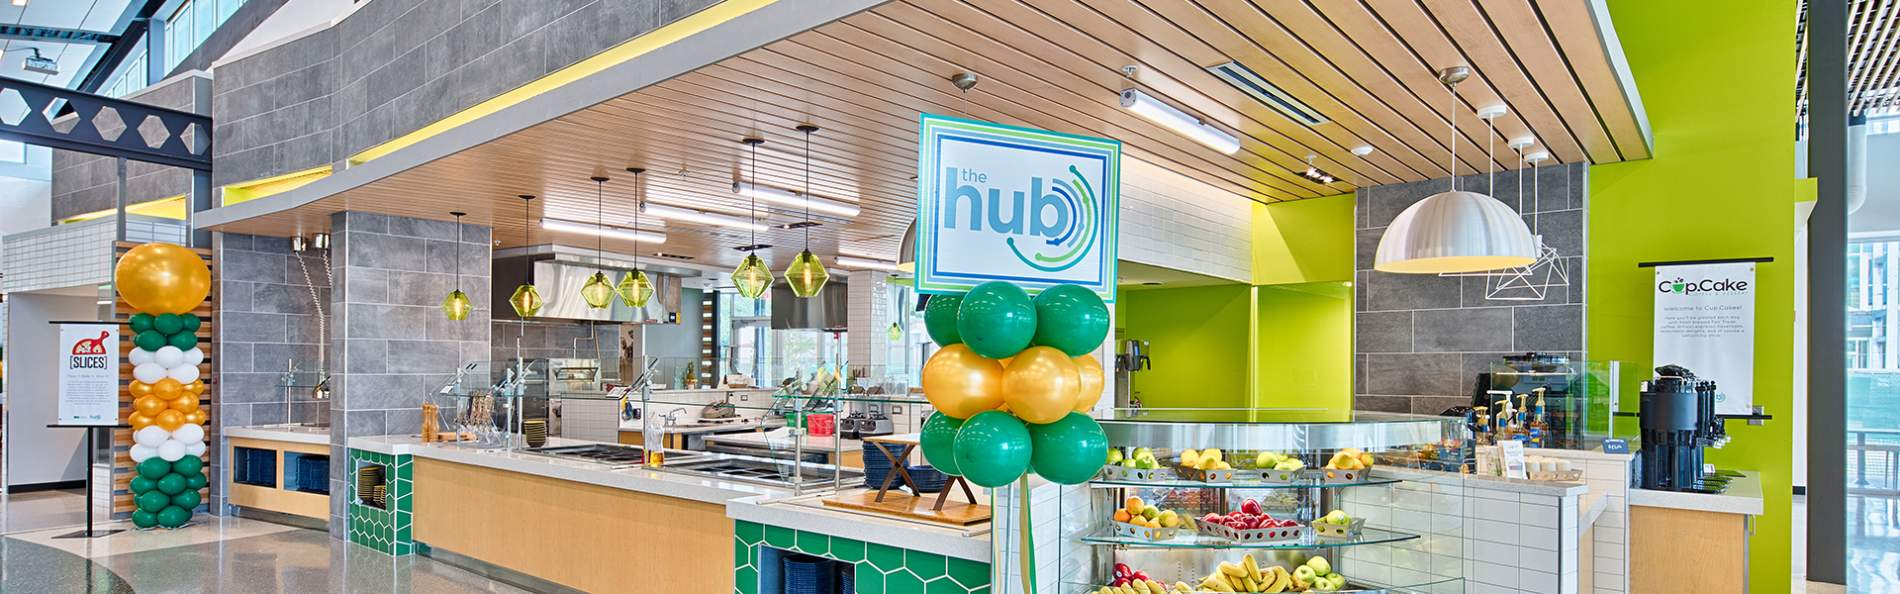 The hub in the new USF dining hall